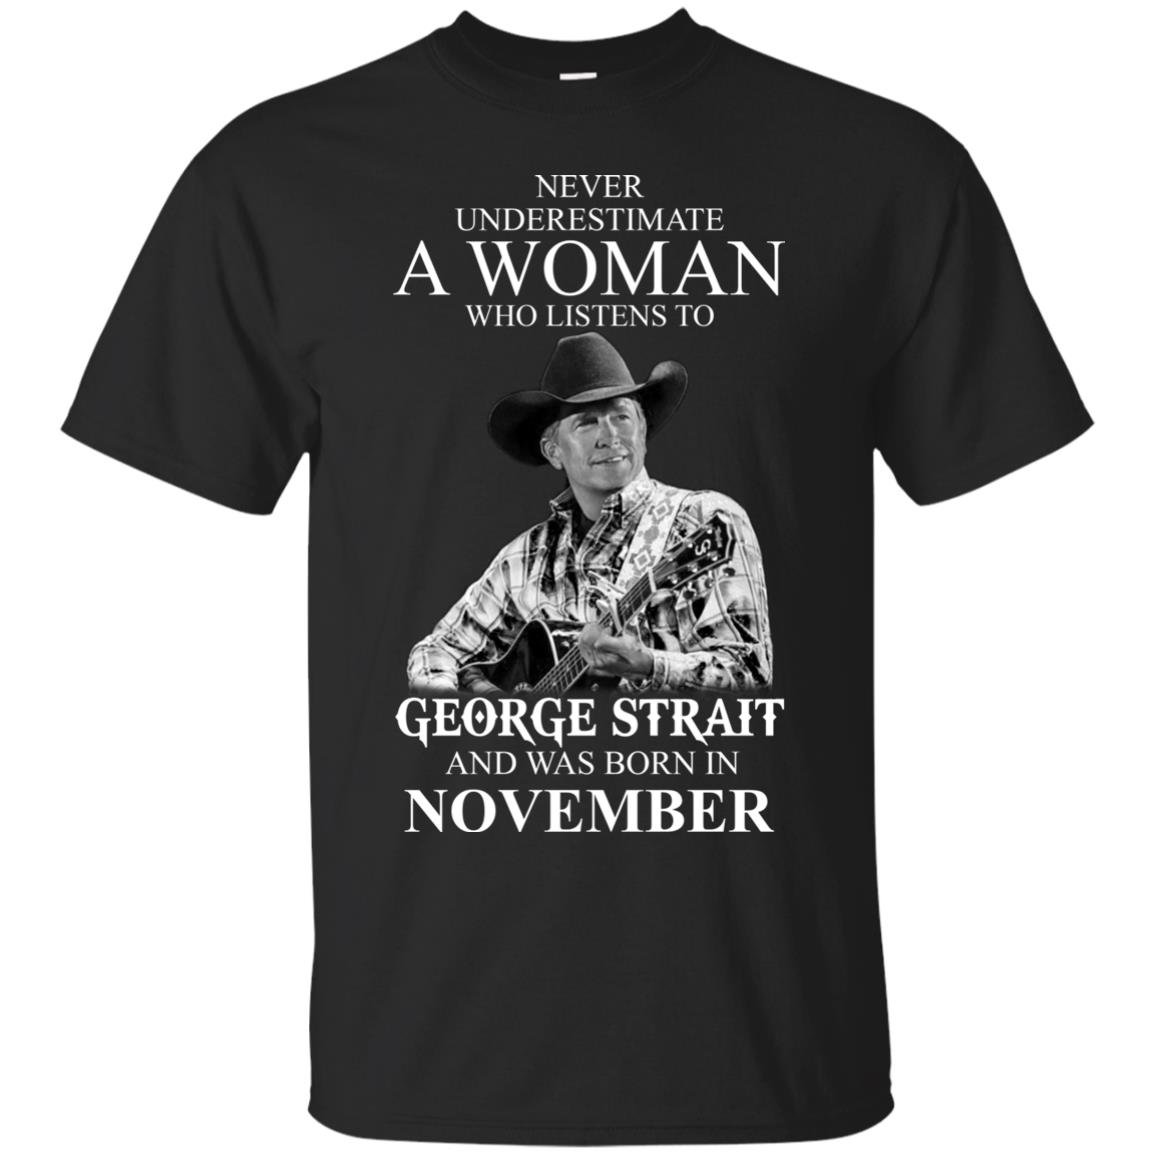 image 350 - Never Underestimate A Woman Who Listens To George Strait And Was Born In November shirt